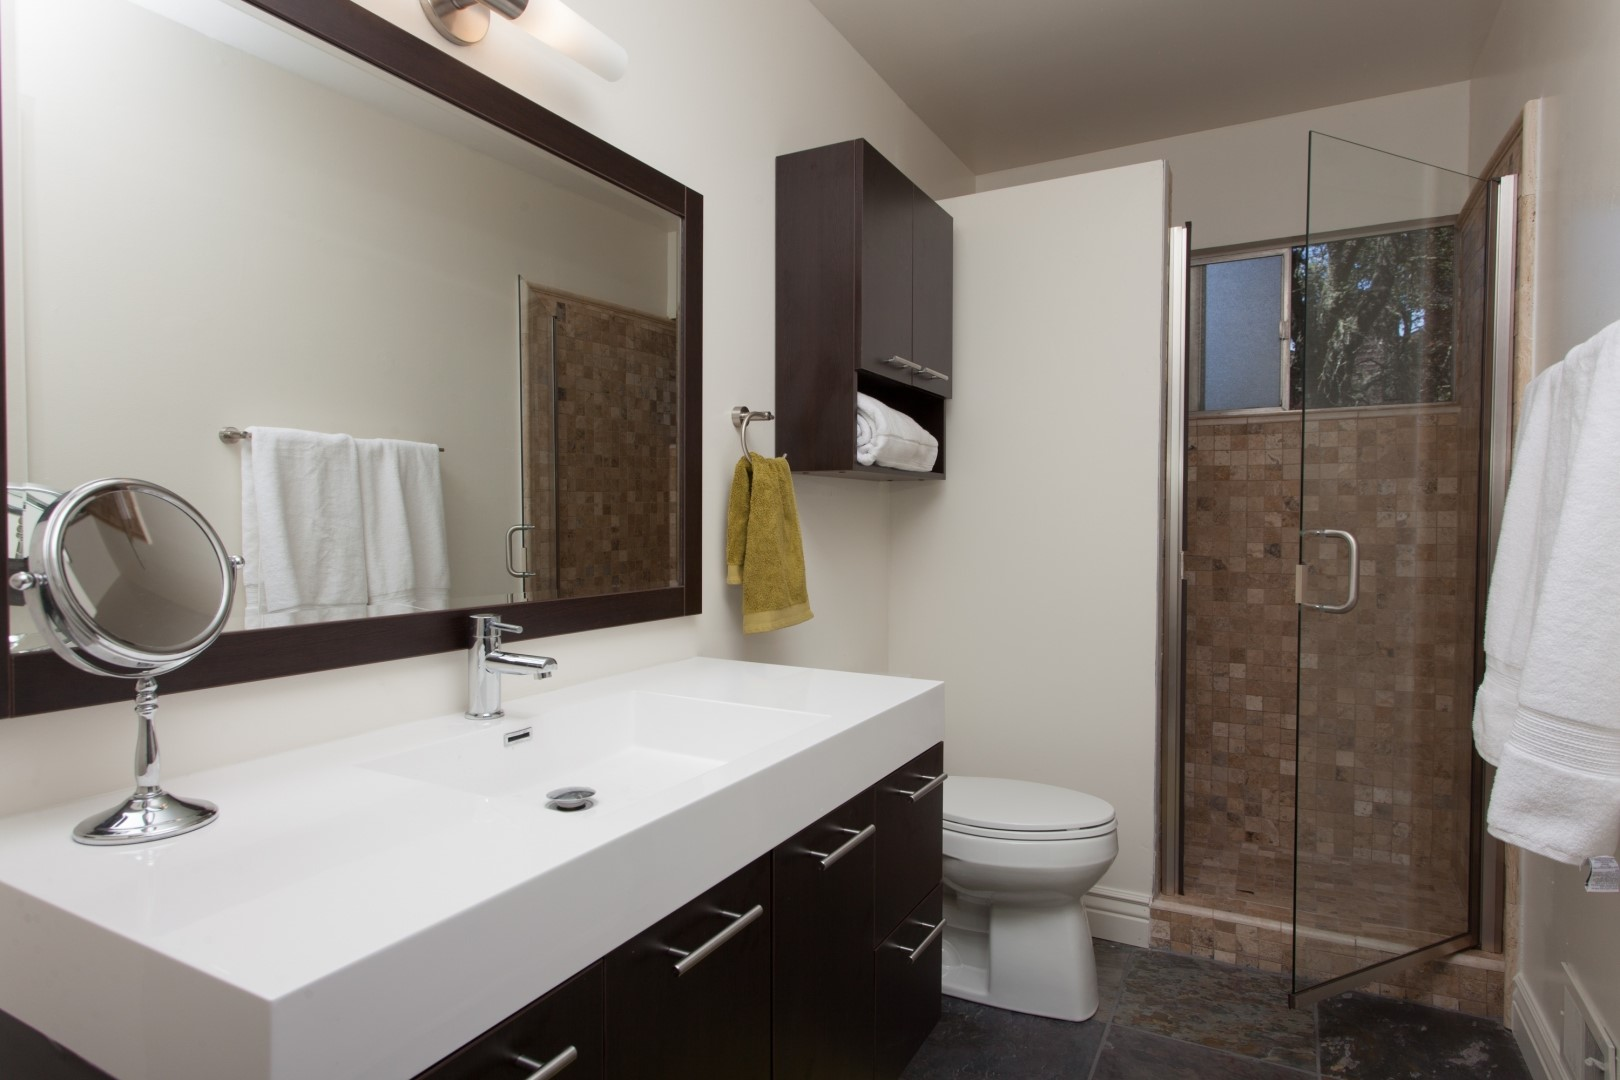 DIY Bathroom Hacks for Renters